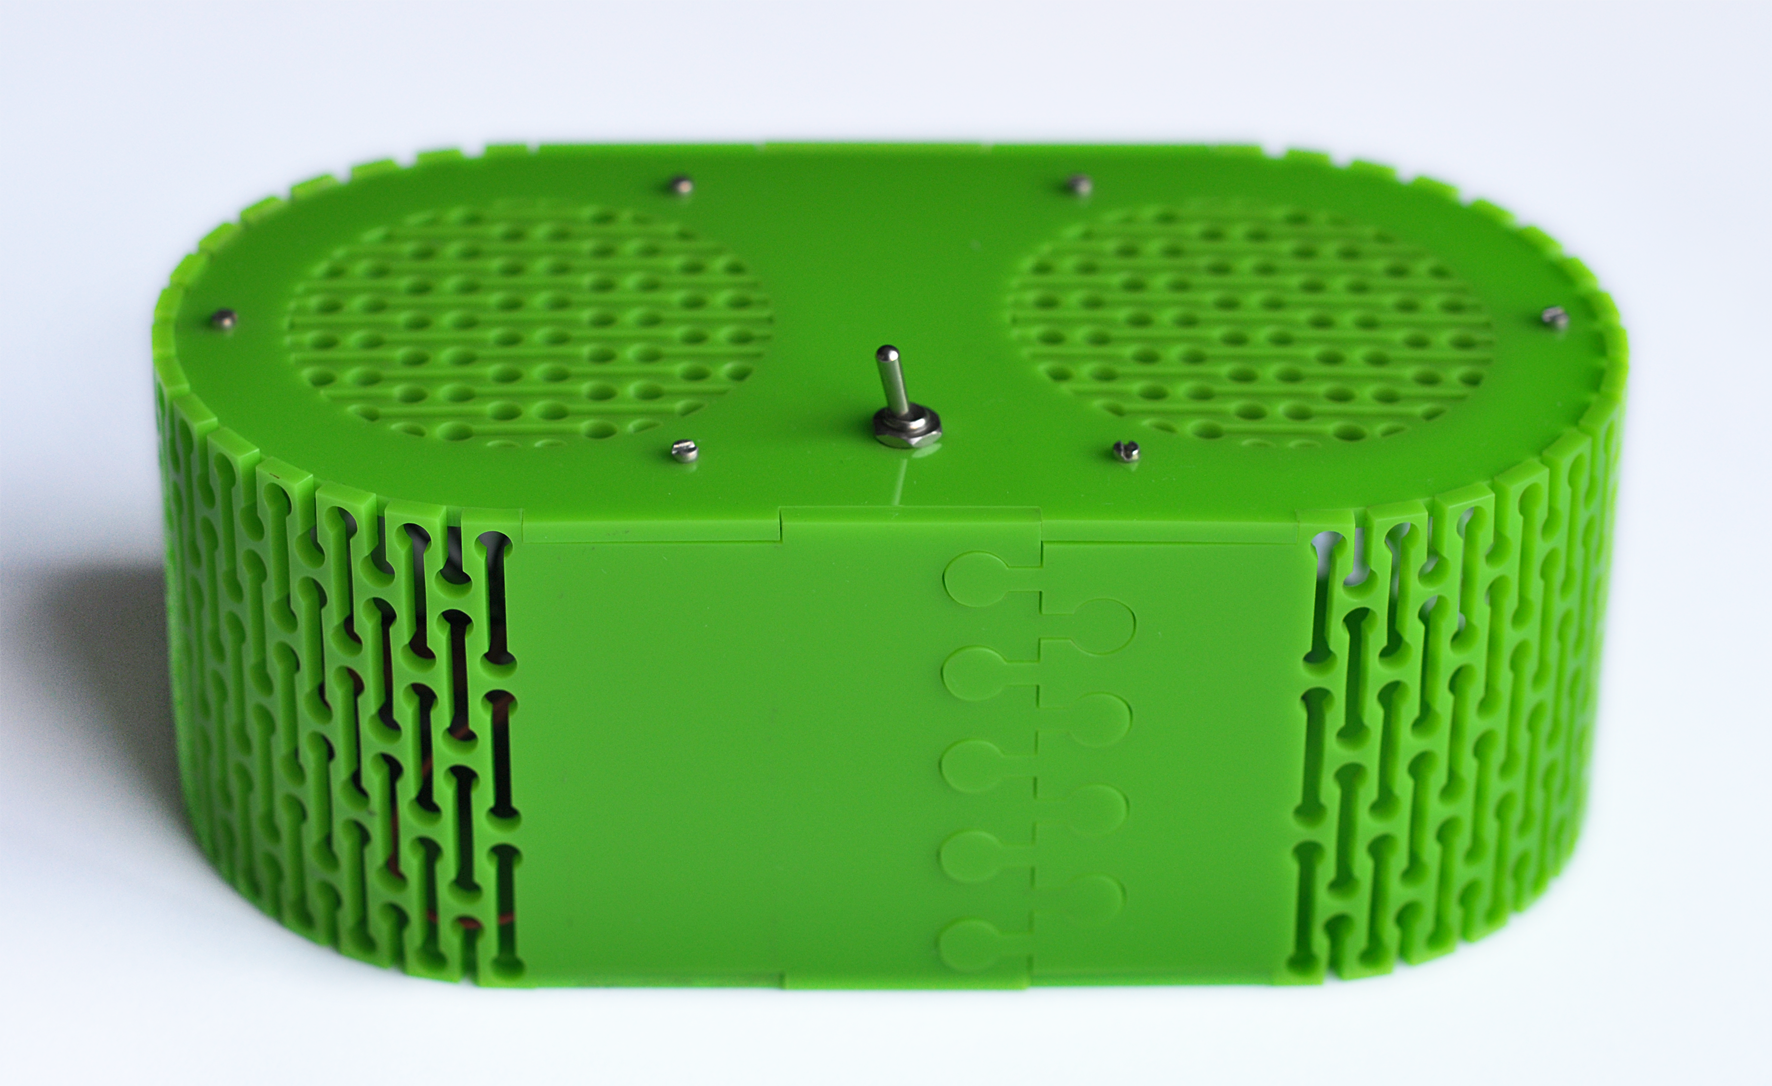 Bluetooth speaker box – Laser cut perspex back. Dougie Scott